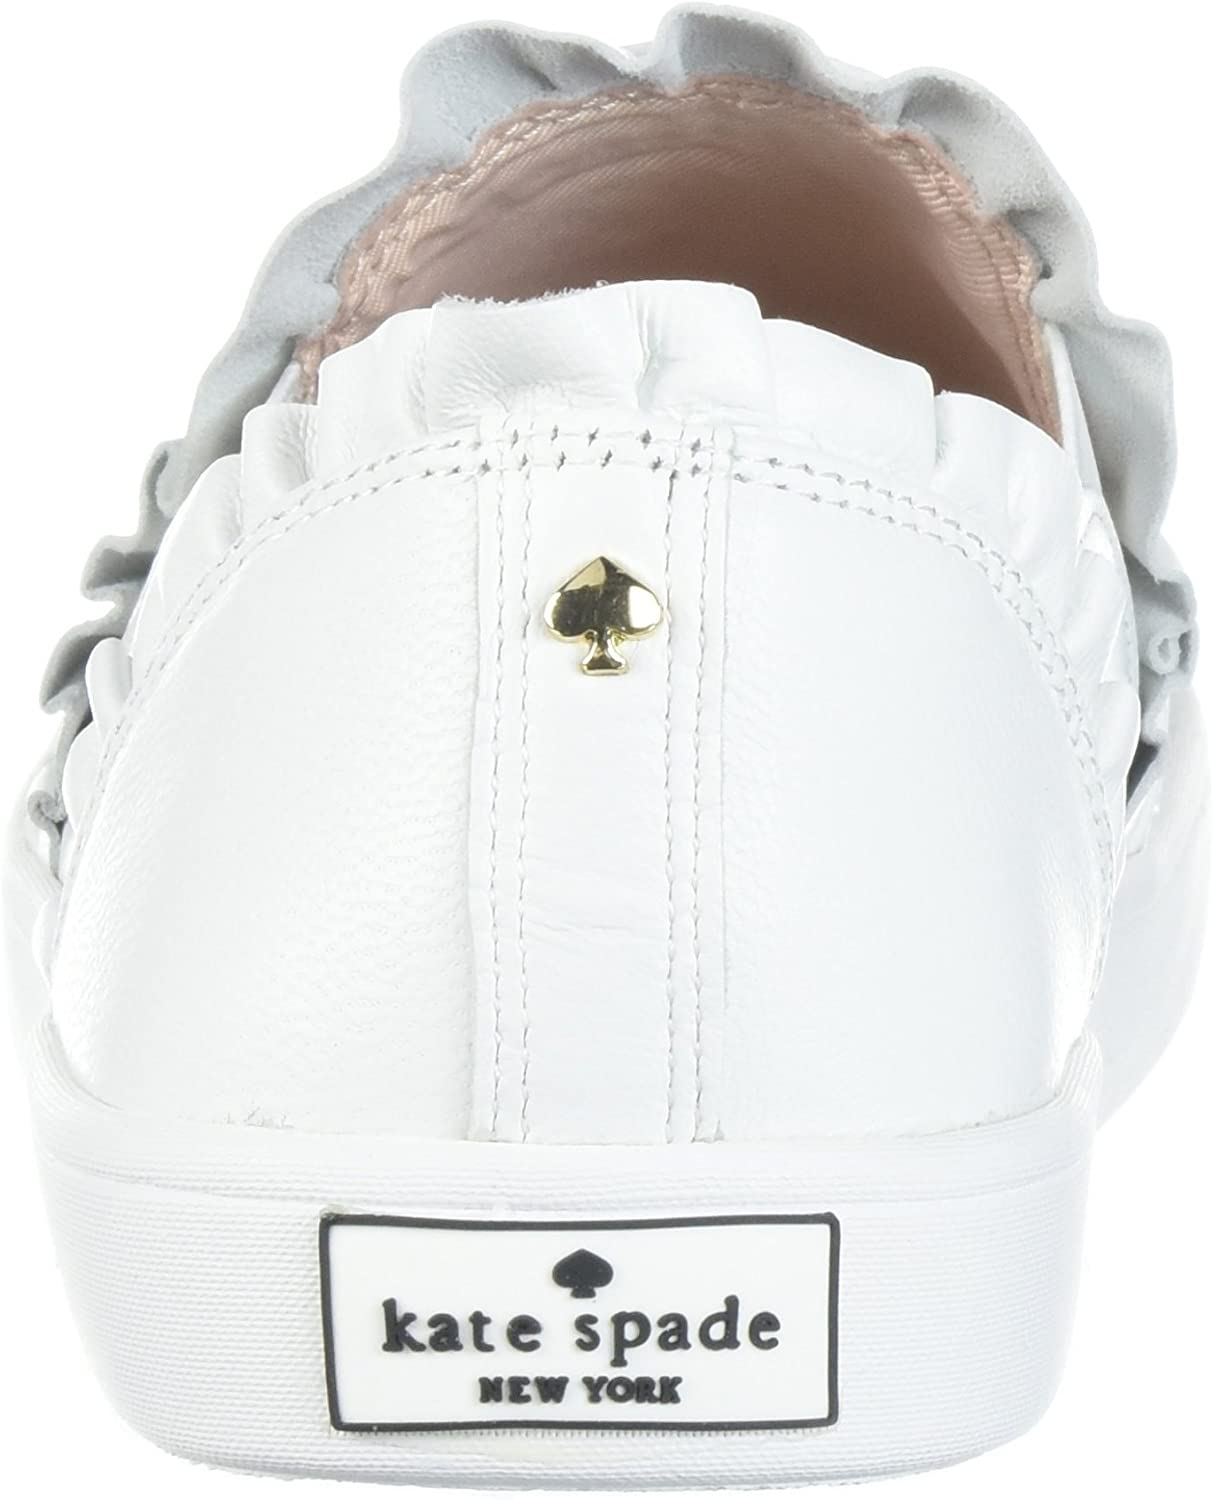 kate spade new york lilly